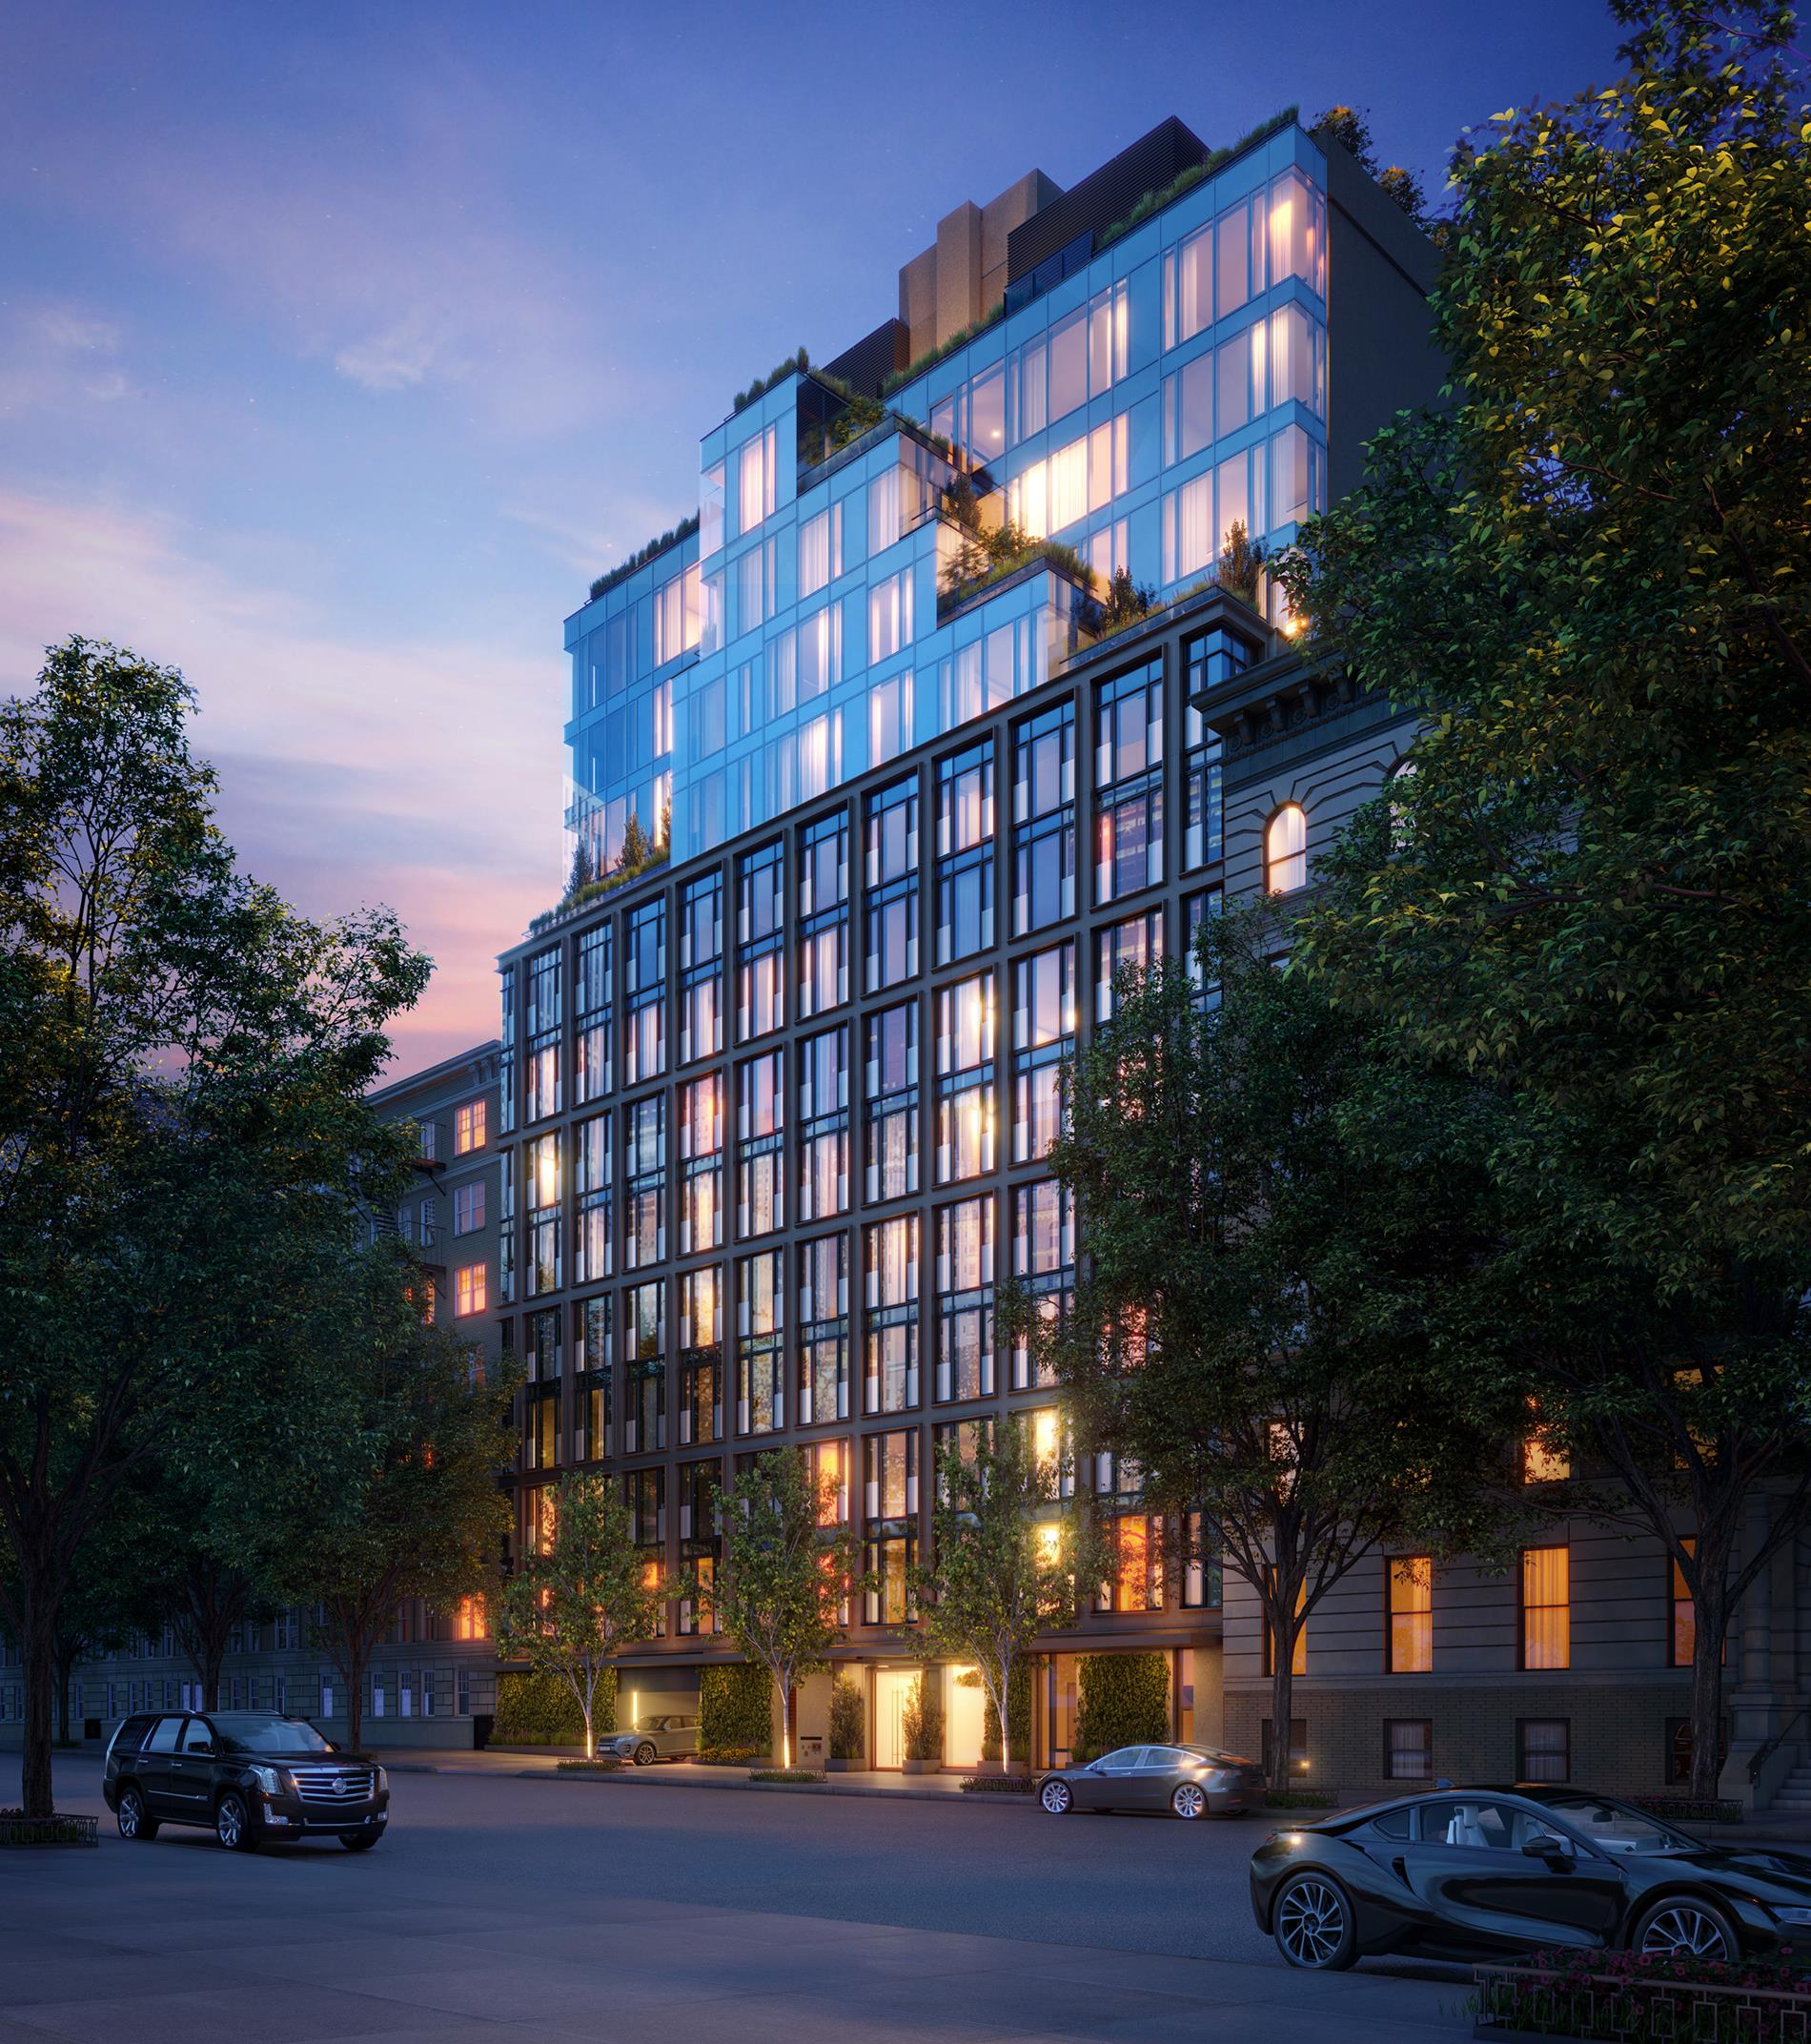 Apartment for sale at 145 Central Park North, Apt 7-C